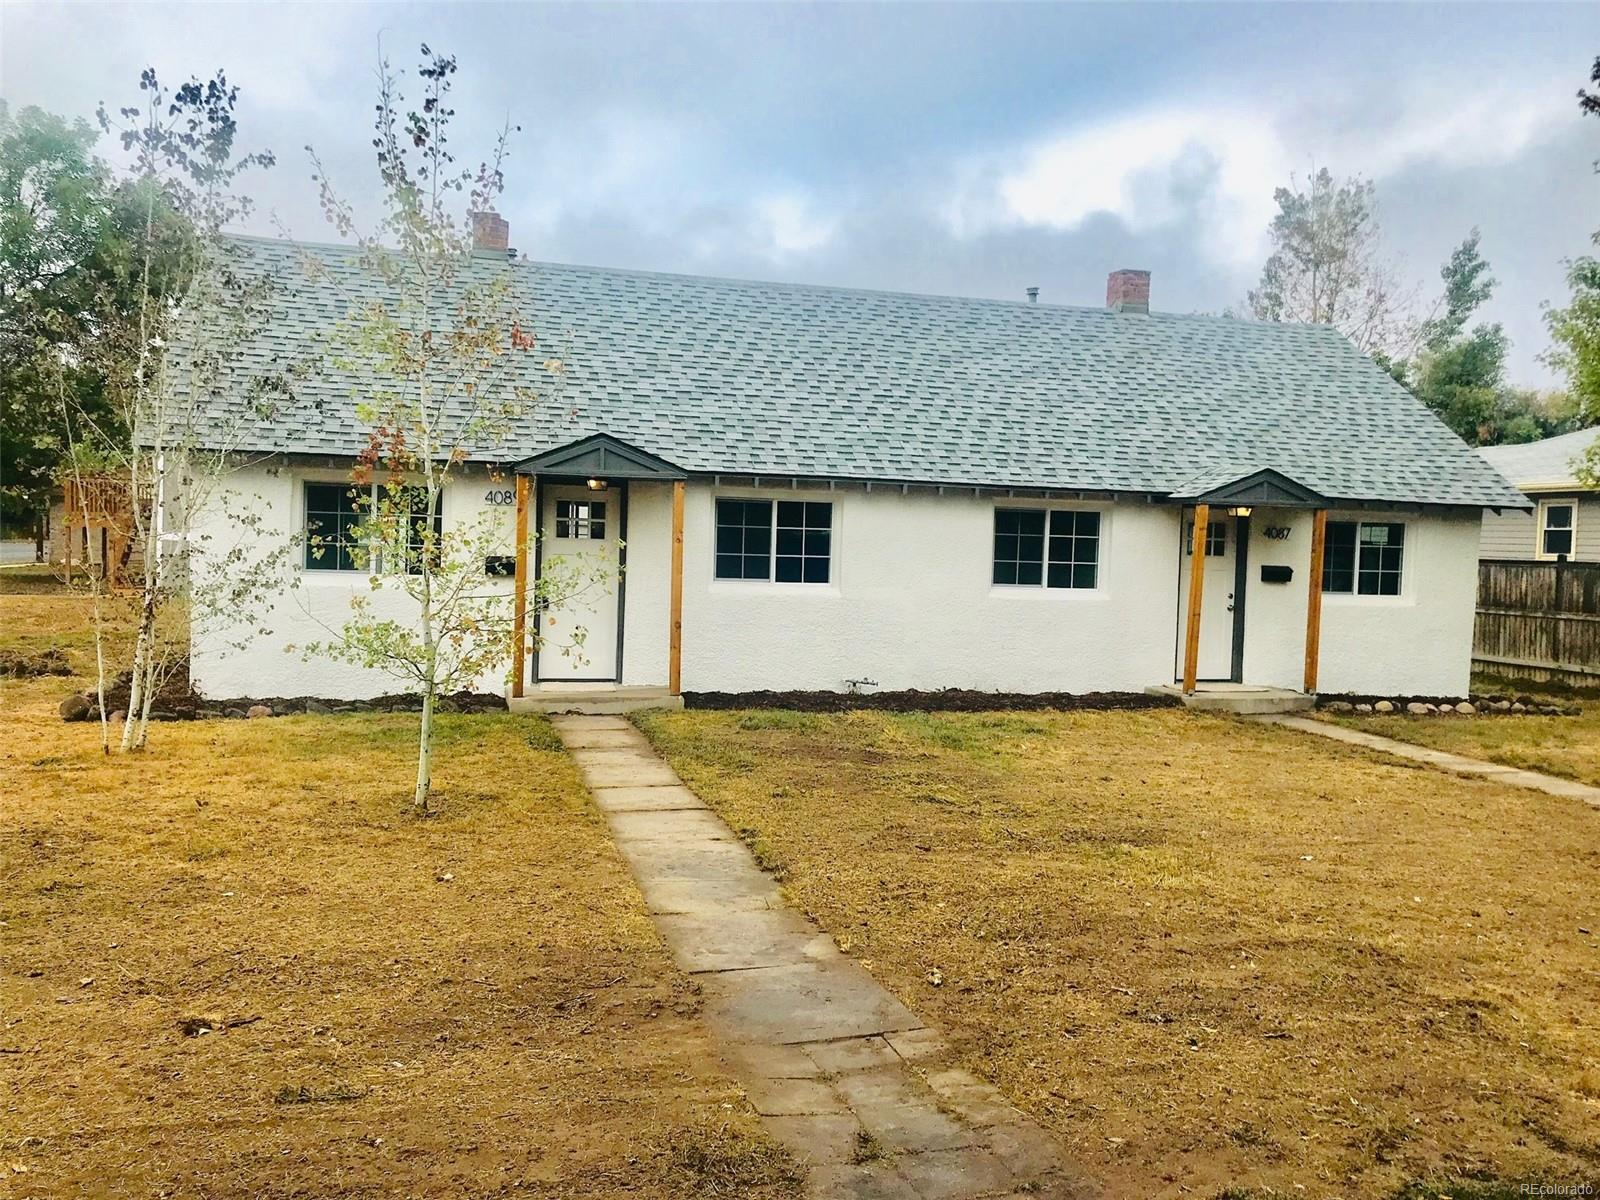 4087 S Clarkson Street, Englewood, CO 80113 - Englewood, CO real estate listing